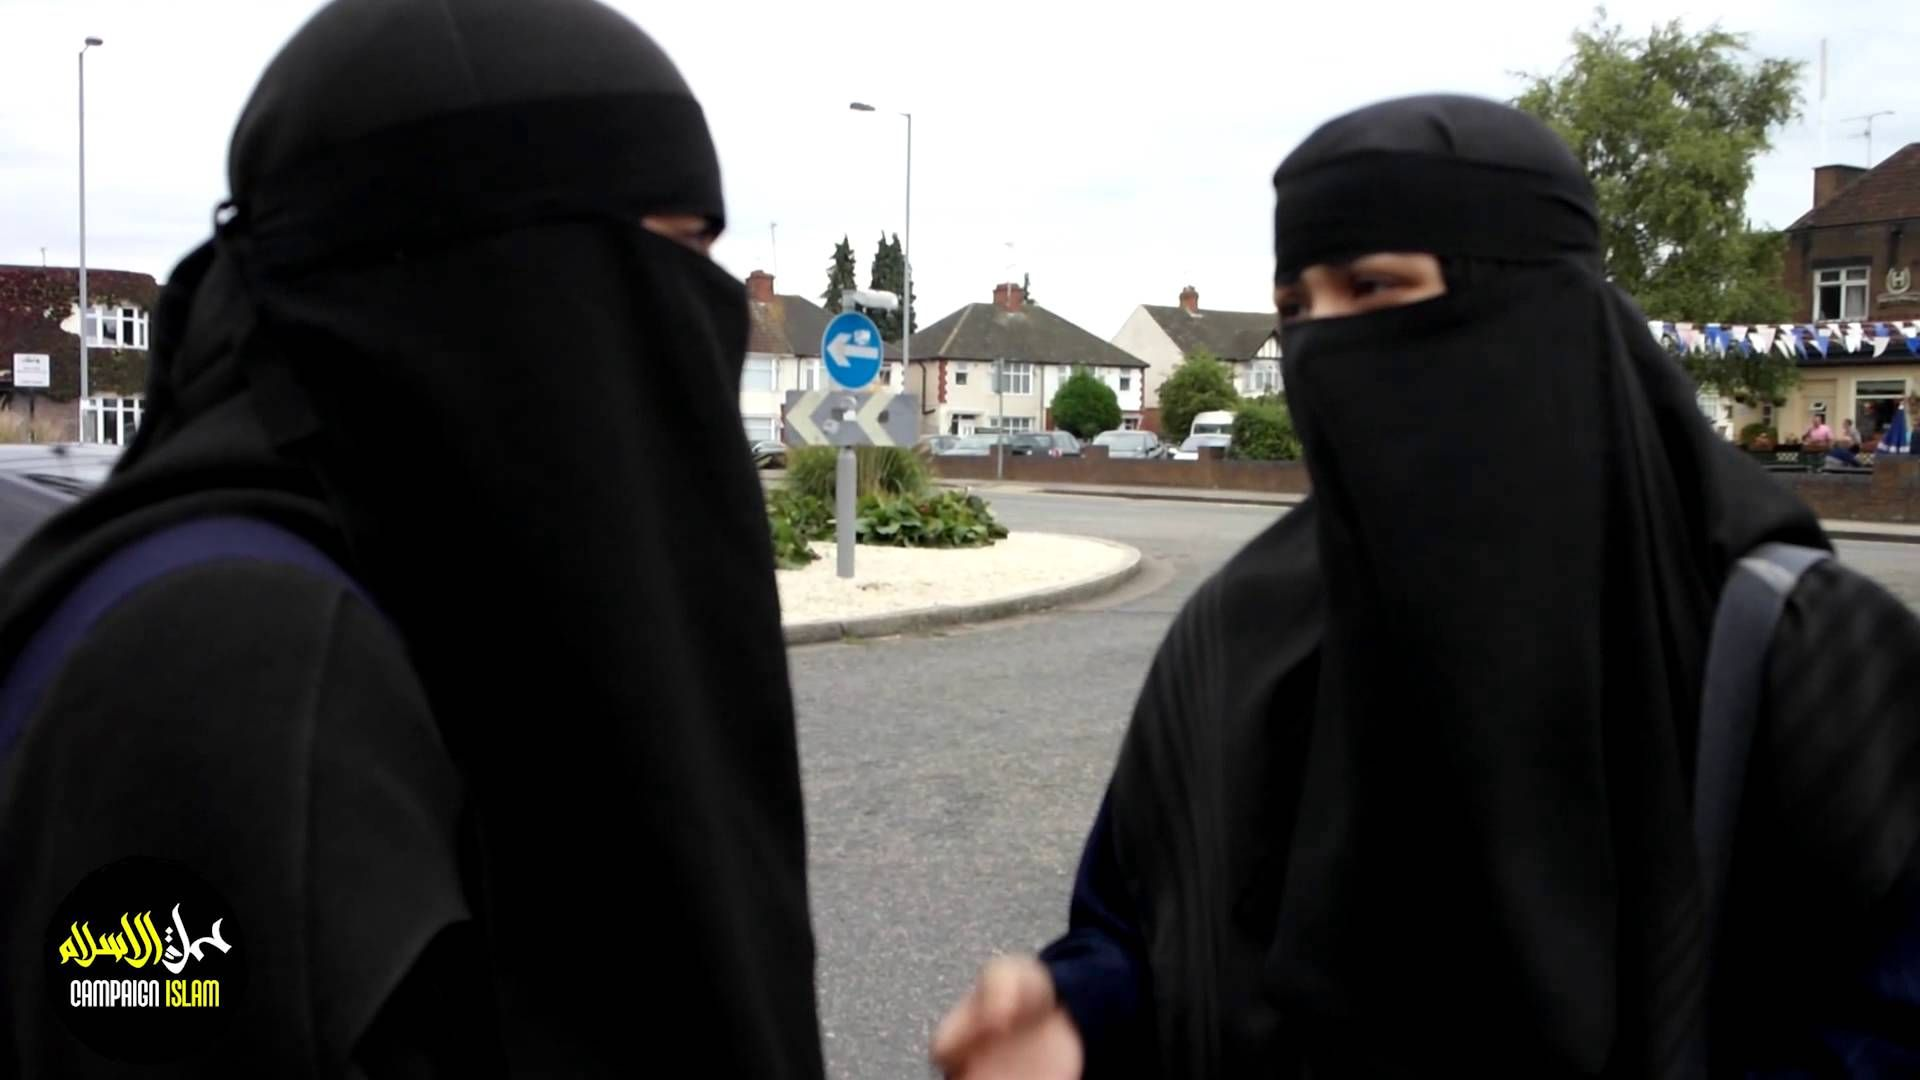 INTERVIEW WITH MUSLIM WOMEN WEARING NIQAB | BANNING THE VEIL (NIQAB) UK (10 mins) - the new Black Plague in Europe.